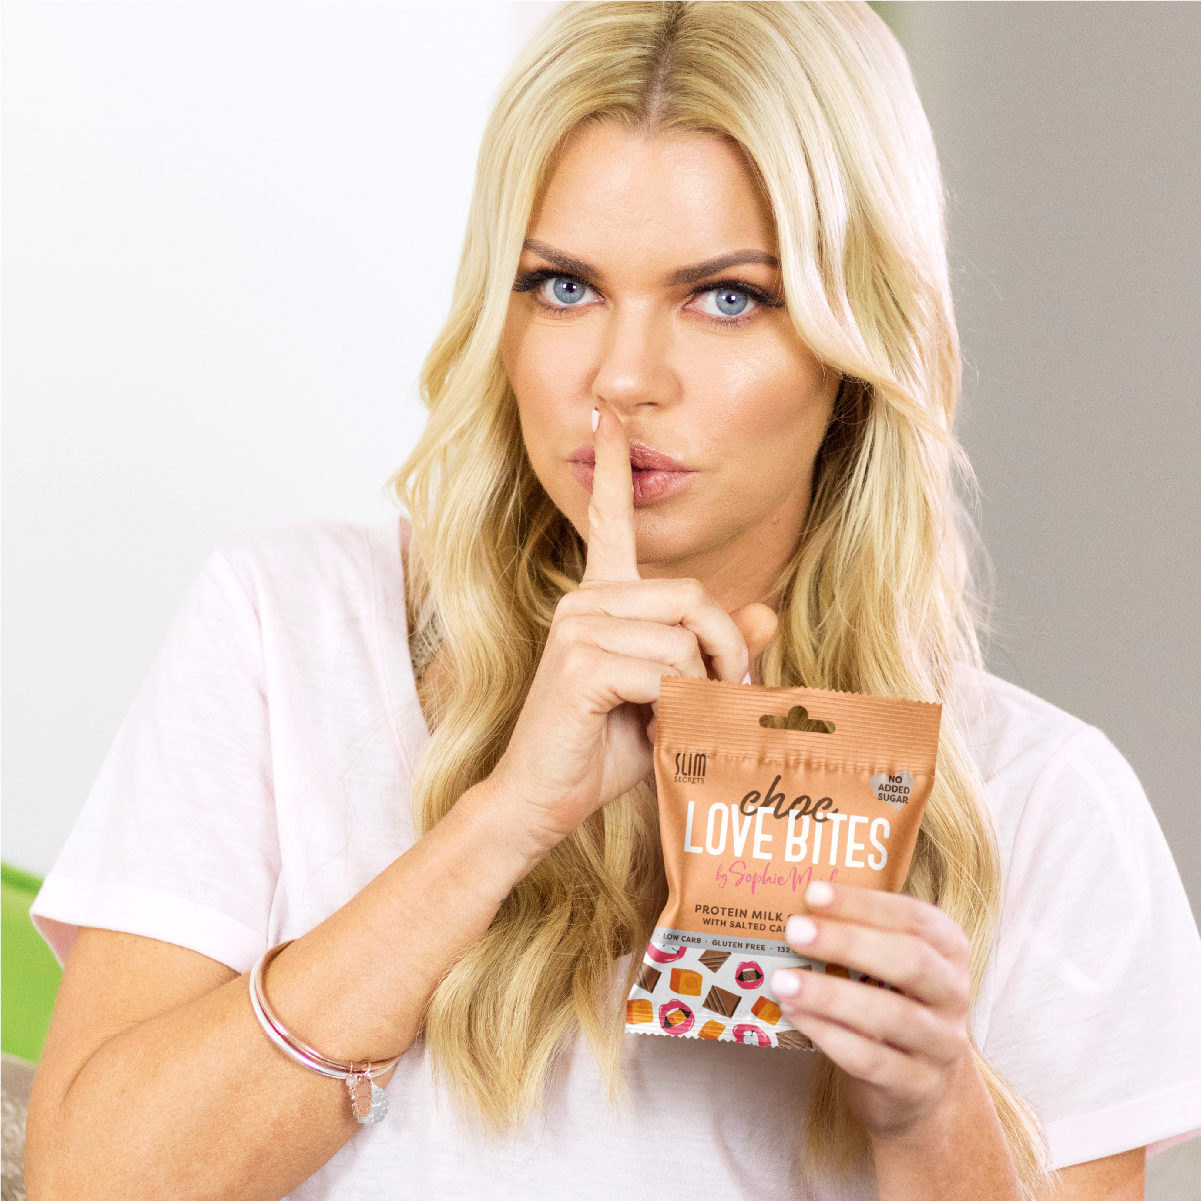 Choc Love Bites Slim Secrets Chocolate Chocolate Bites Sophie Monk Dark Chocolate Milk Chocolate